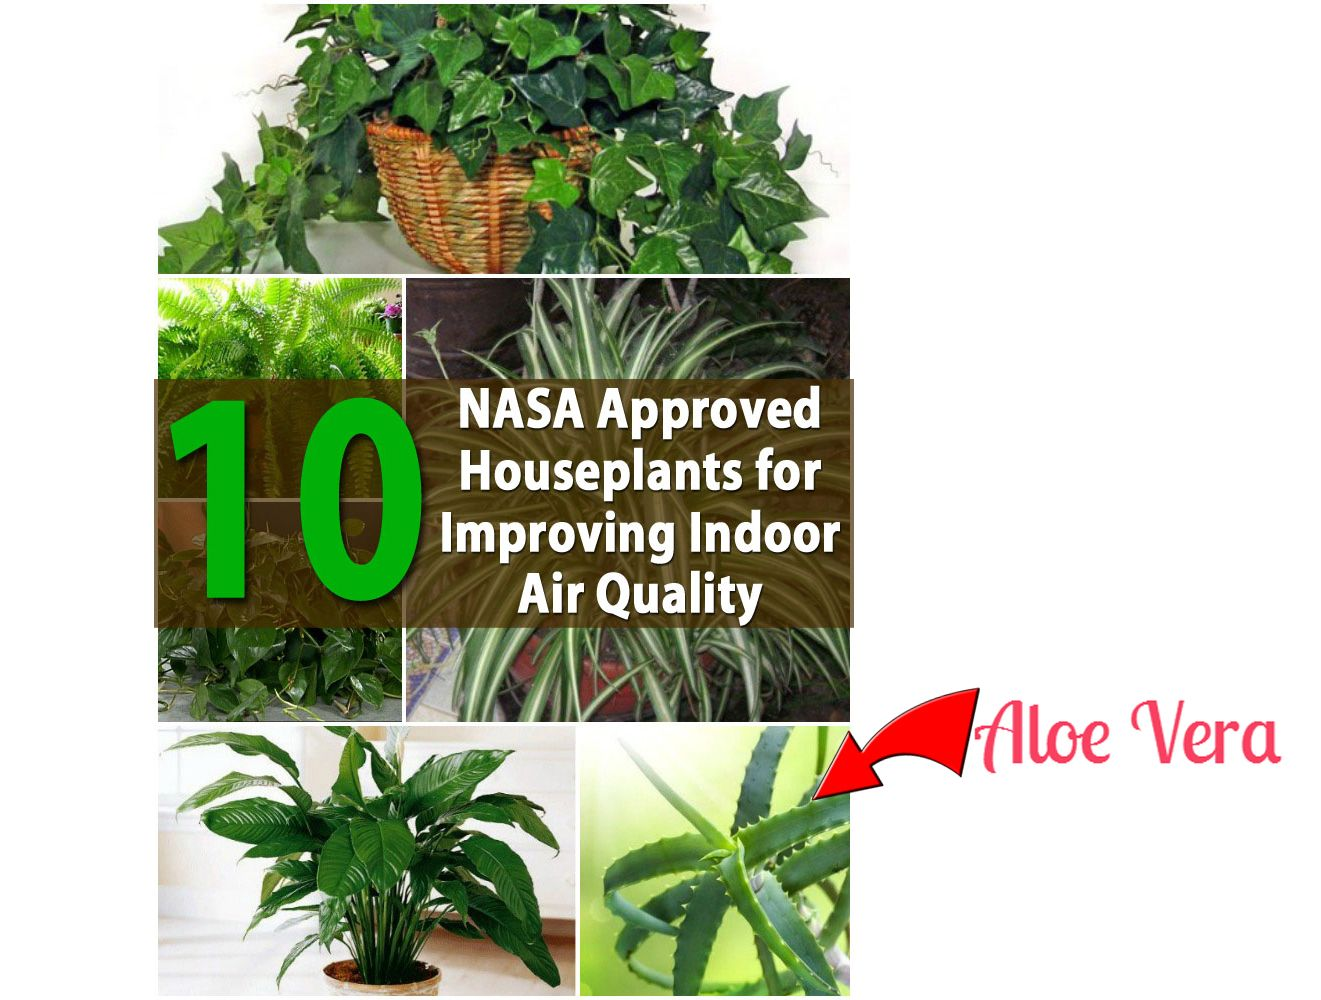 Aloe is NASA approved indoor plant for improving indoor